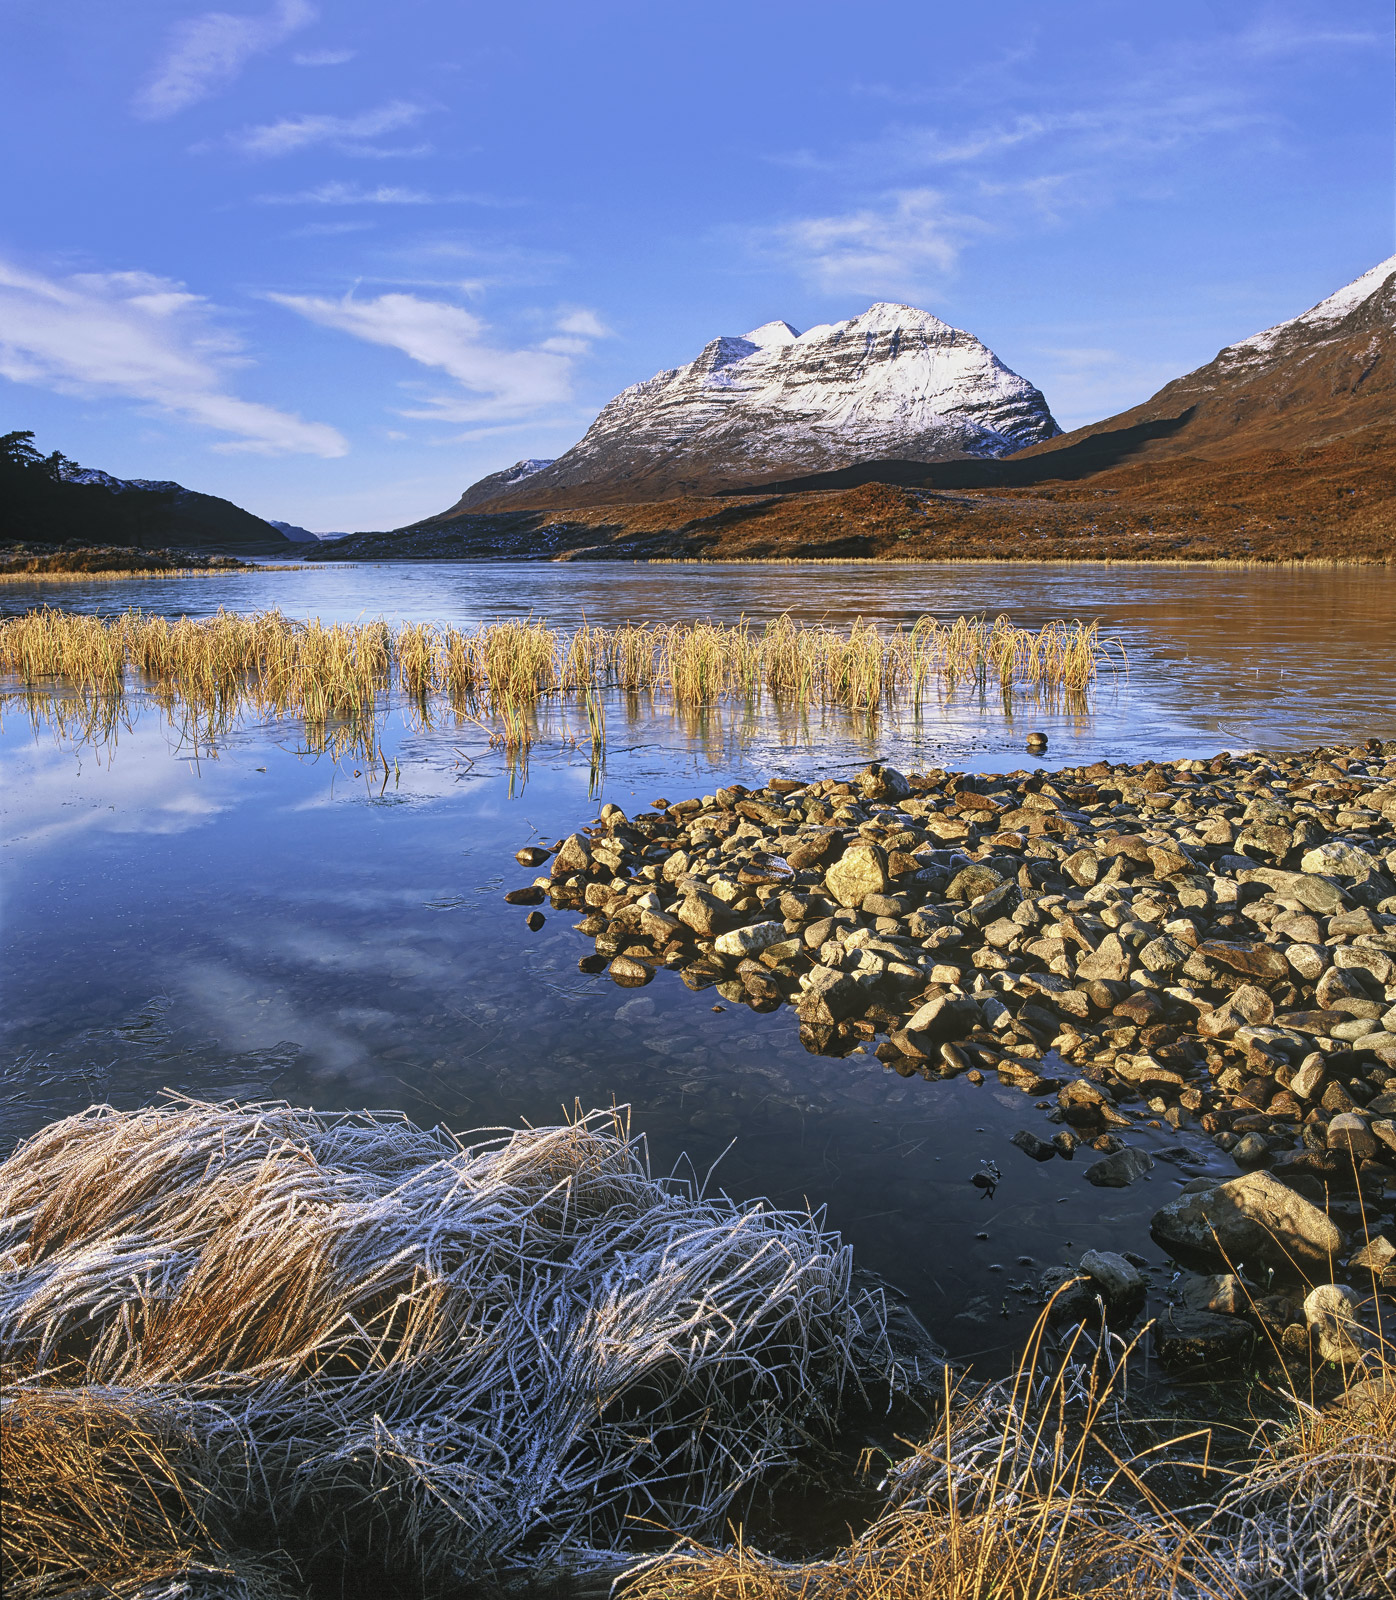 Liathach Chilled, Loch Clair, Torridon, Scotland, snow, peak, reflected, ice, blue, cloud, gold, reeds, frosted, mountai, photo